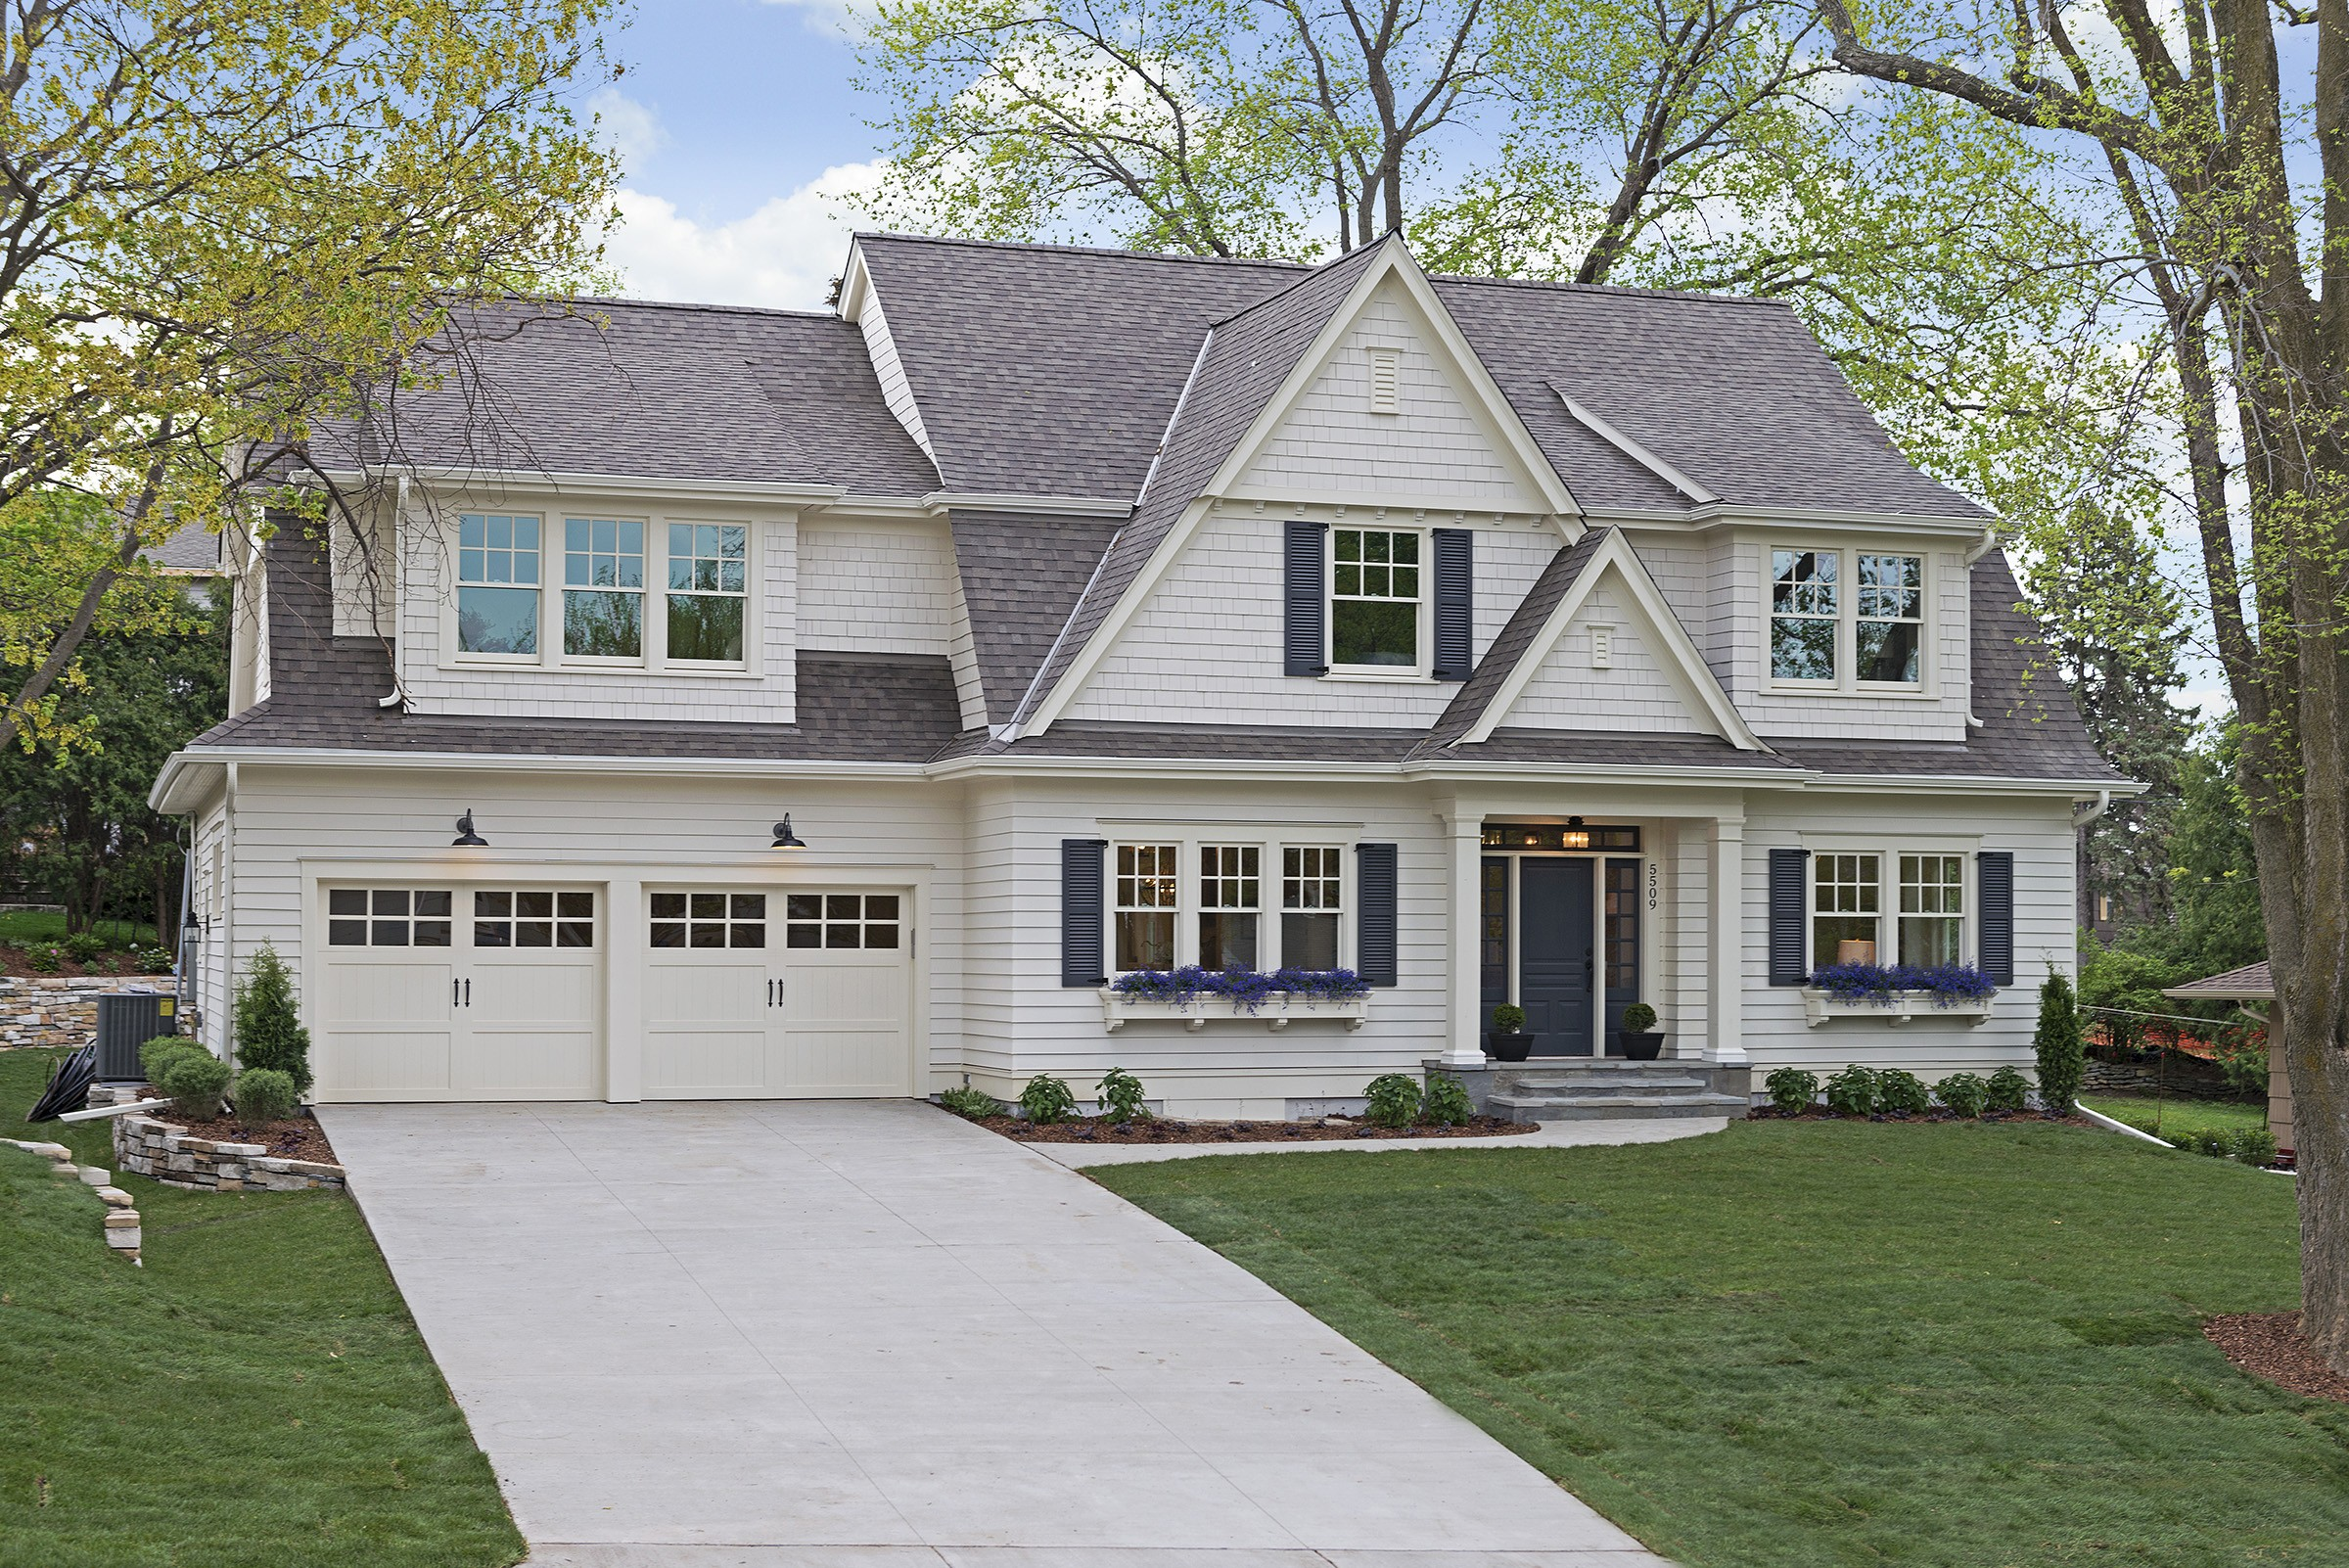 5413 exterior completed.jpg